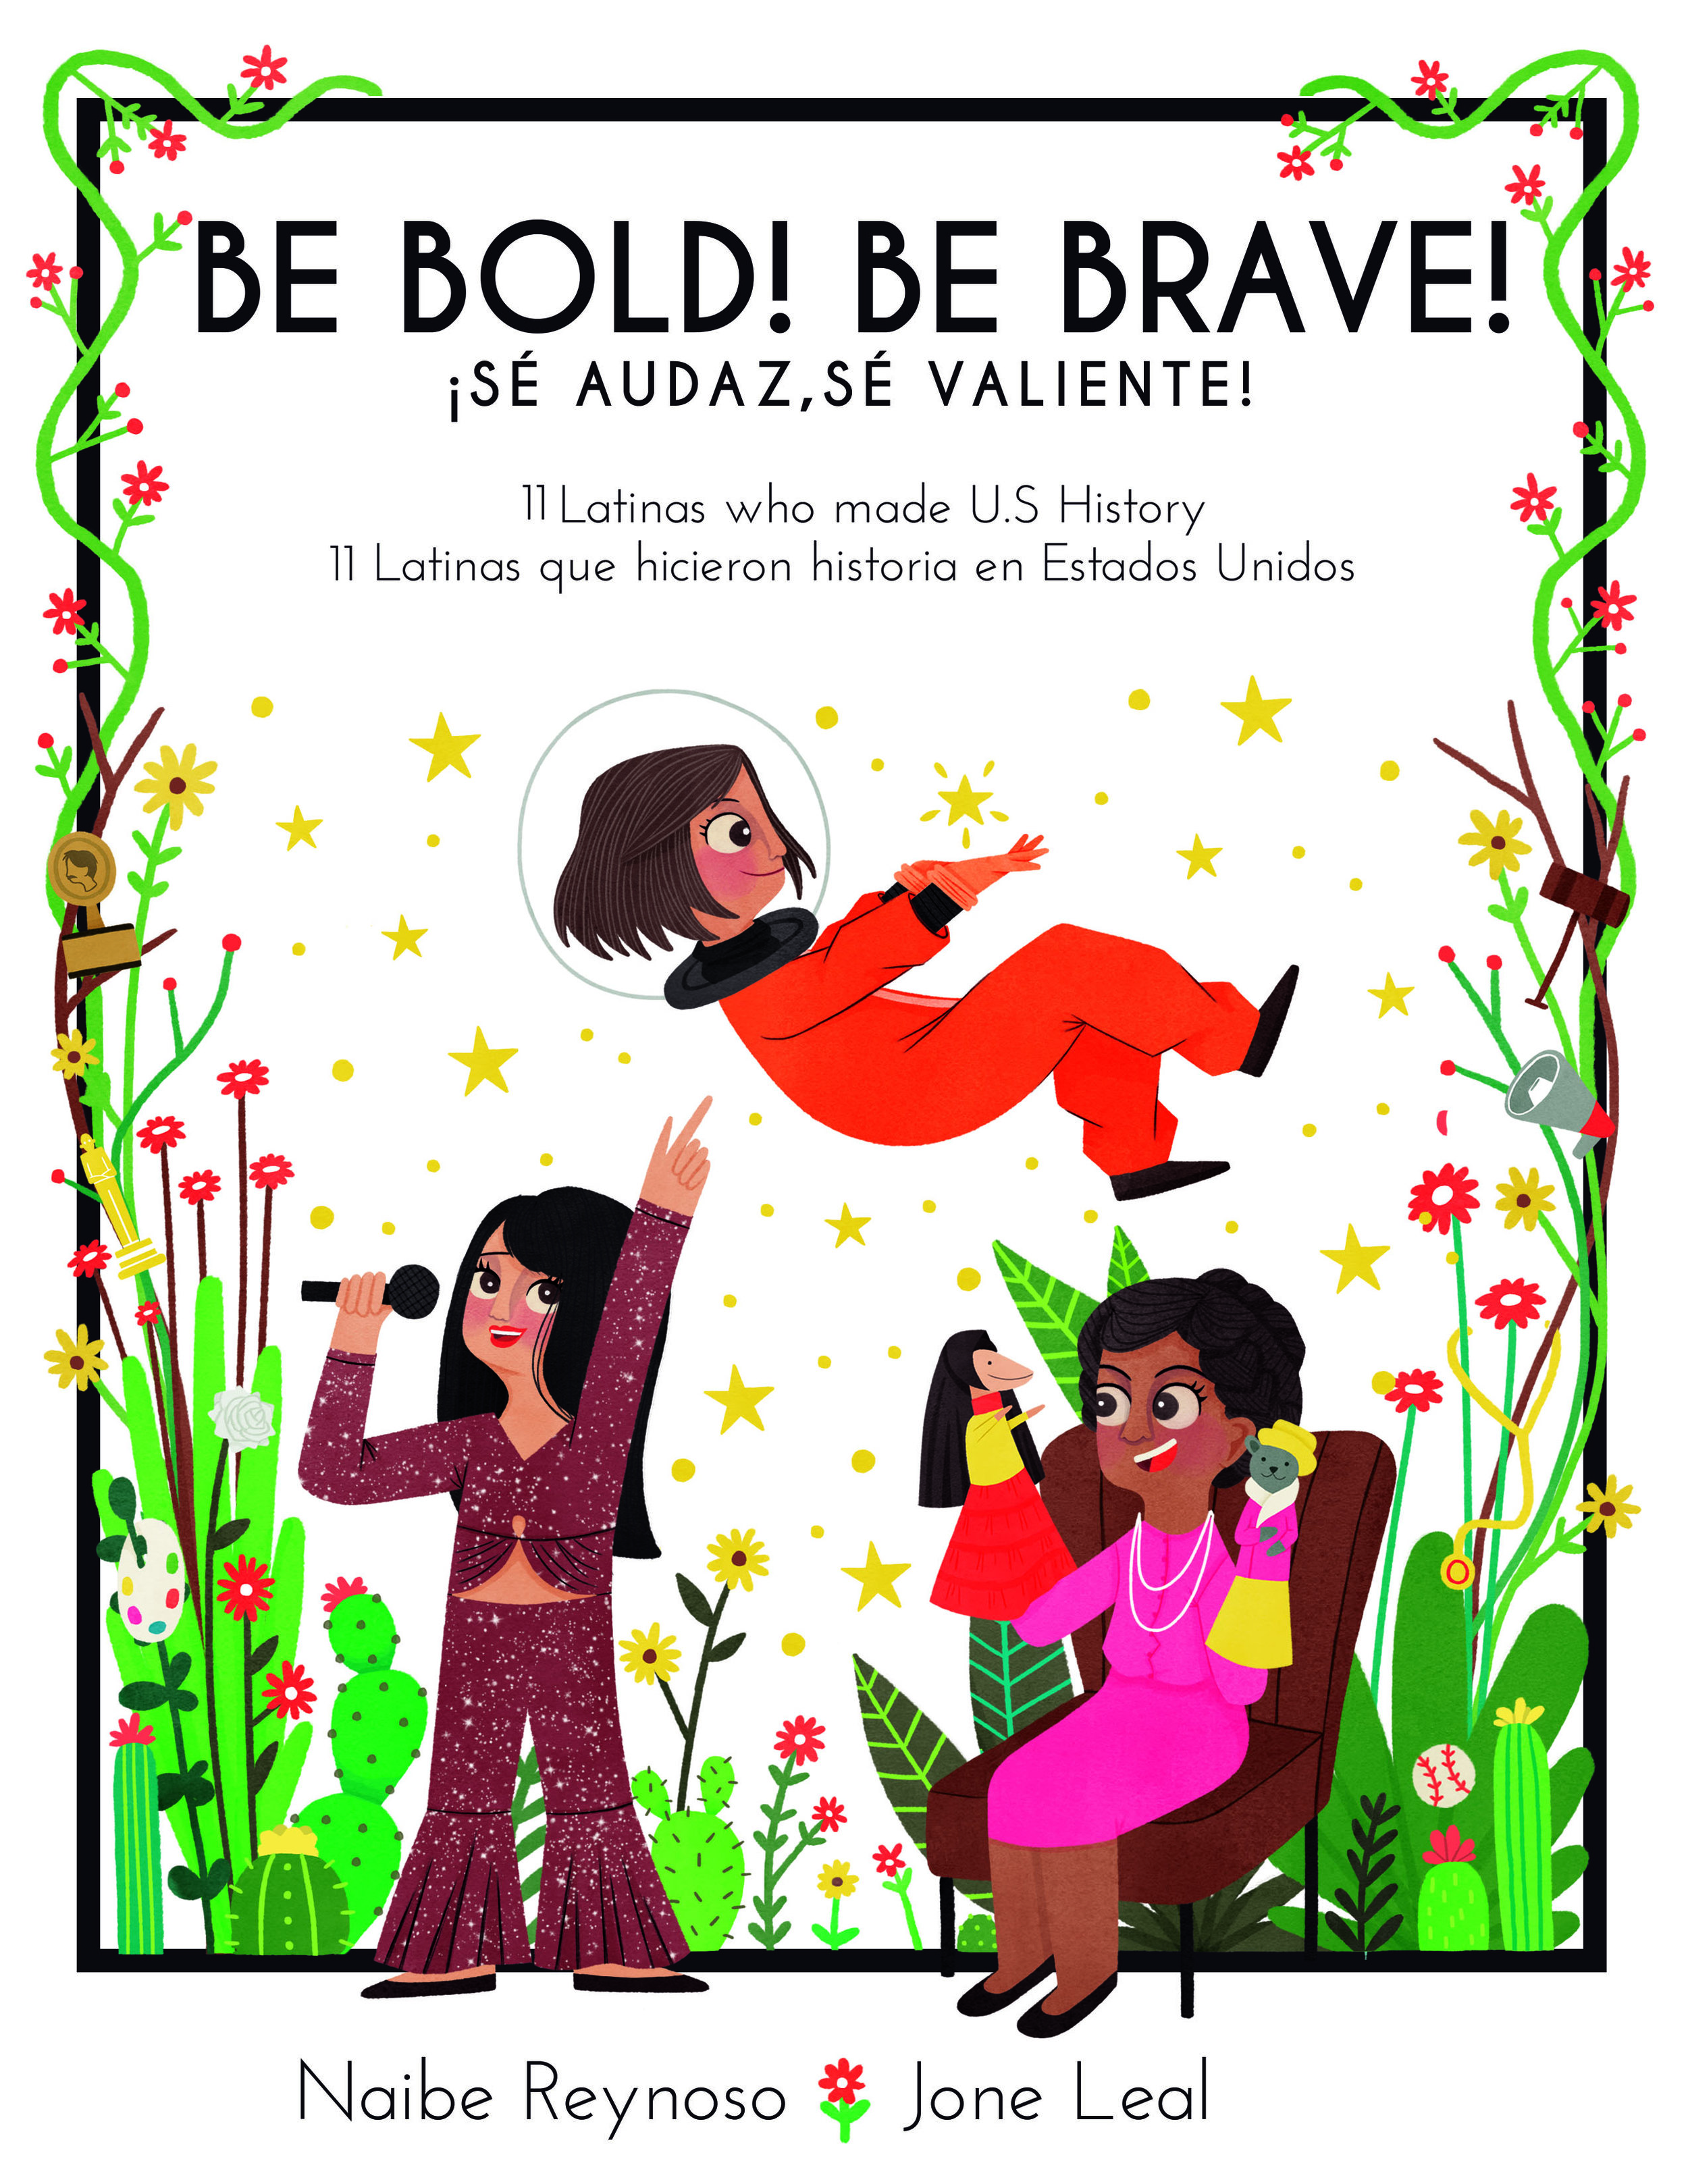 - New bilingual children's book hopes to inspire the next generation of Latina leaders in science, medicine, politics, sports, journalism and art.Kindle version to be released March 08, in conjunction with International Women's Day 2019!